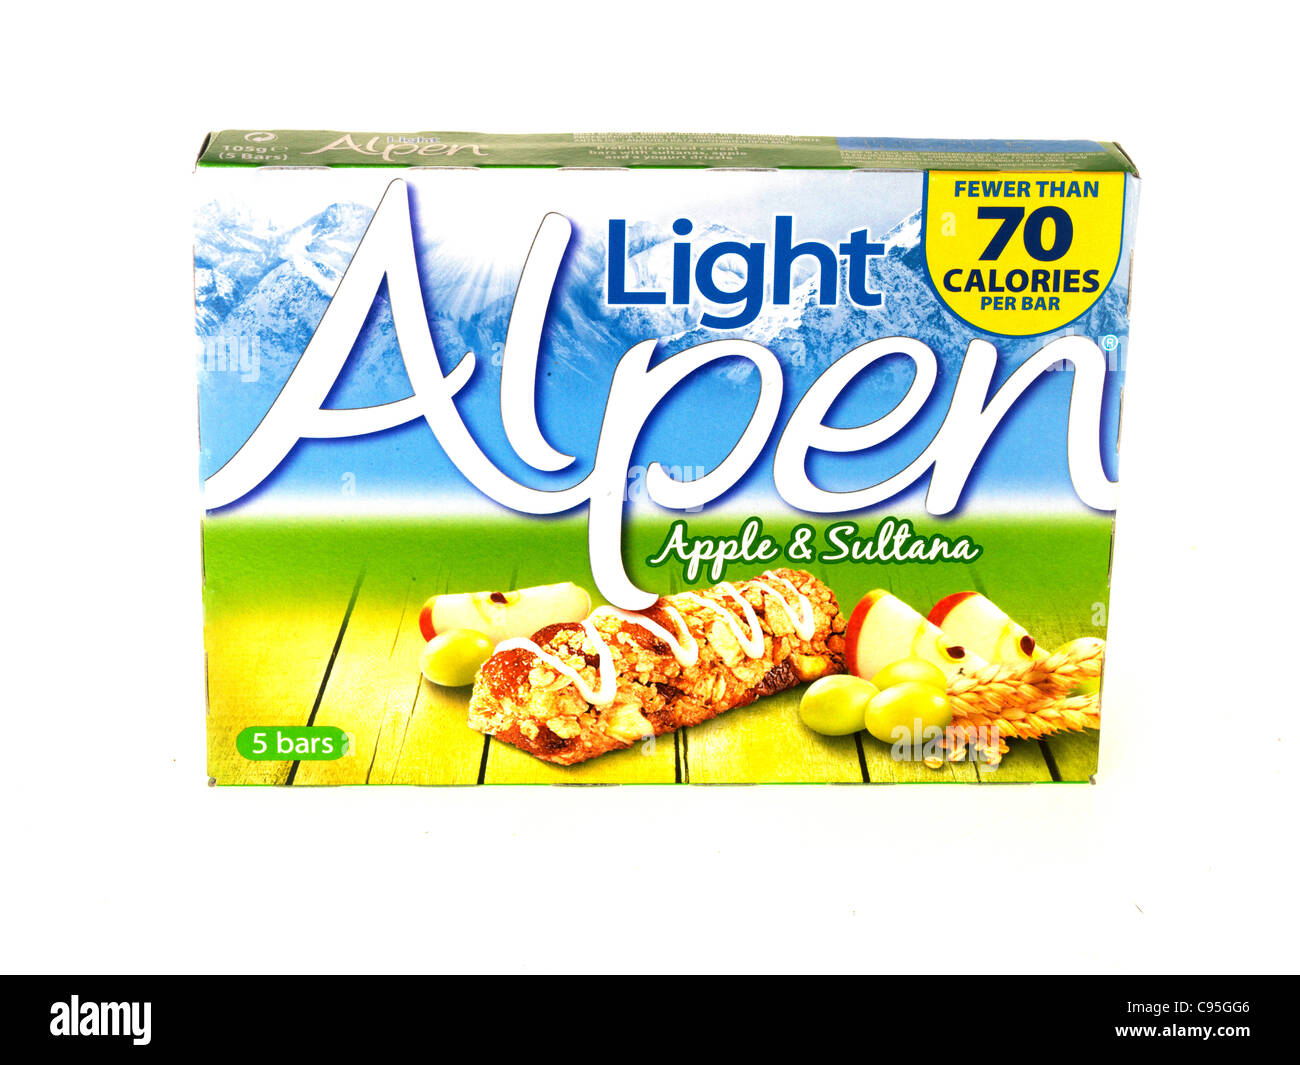 Alpen light apple and sultana cereal bars stock photo 40075398 alamy alpen light apple and sultana cereal bars aloadofball Image collections